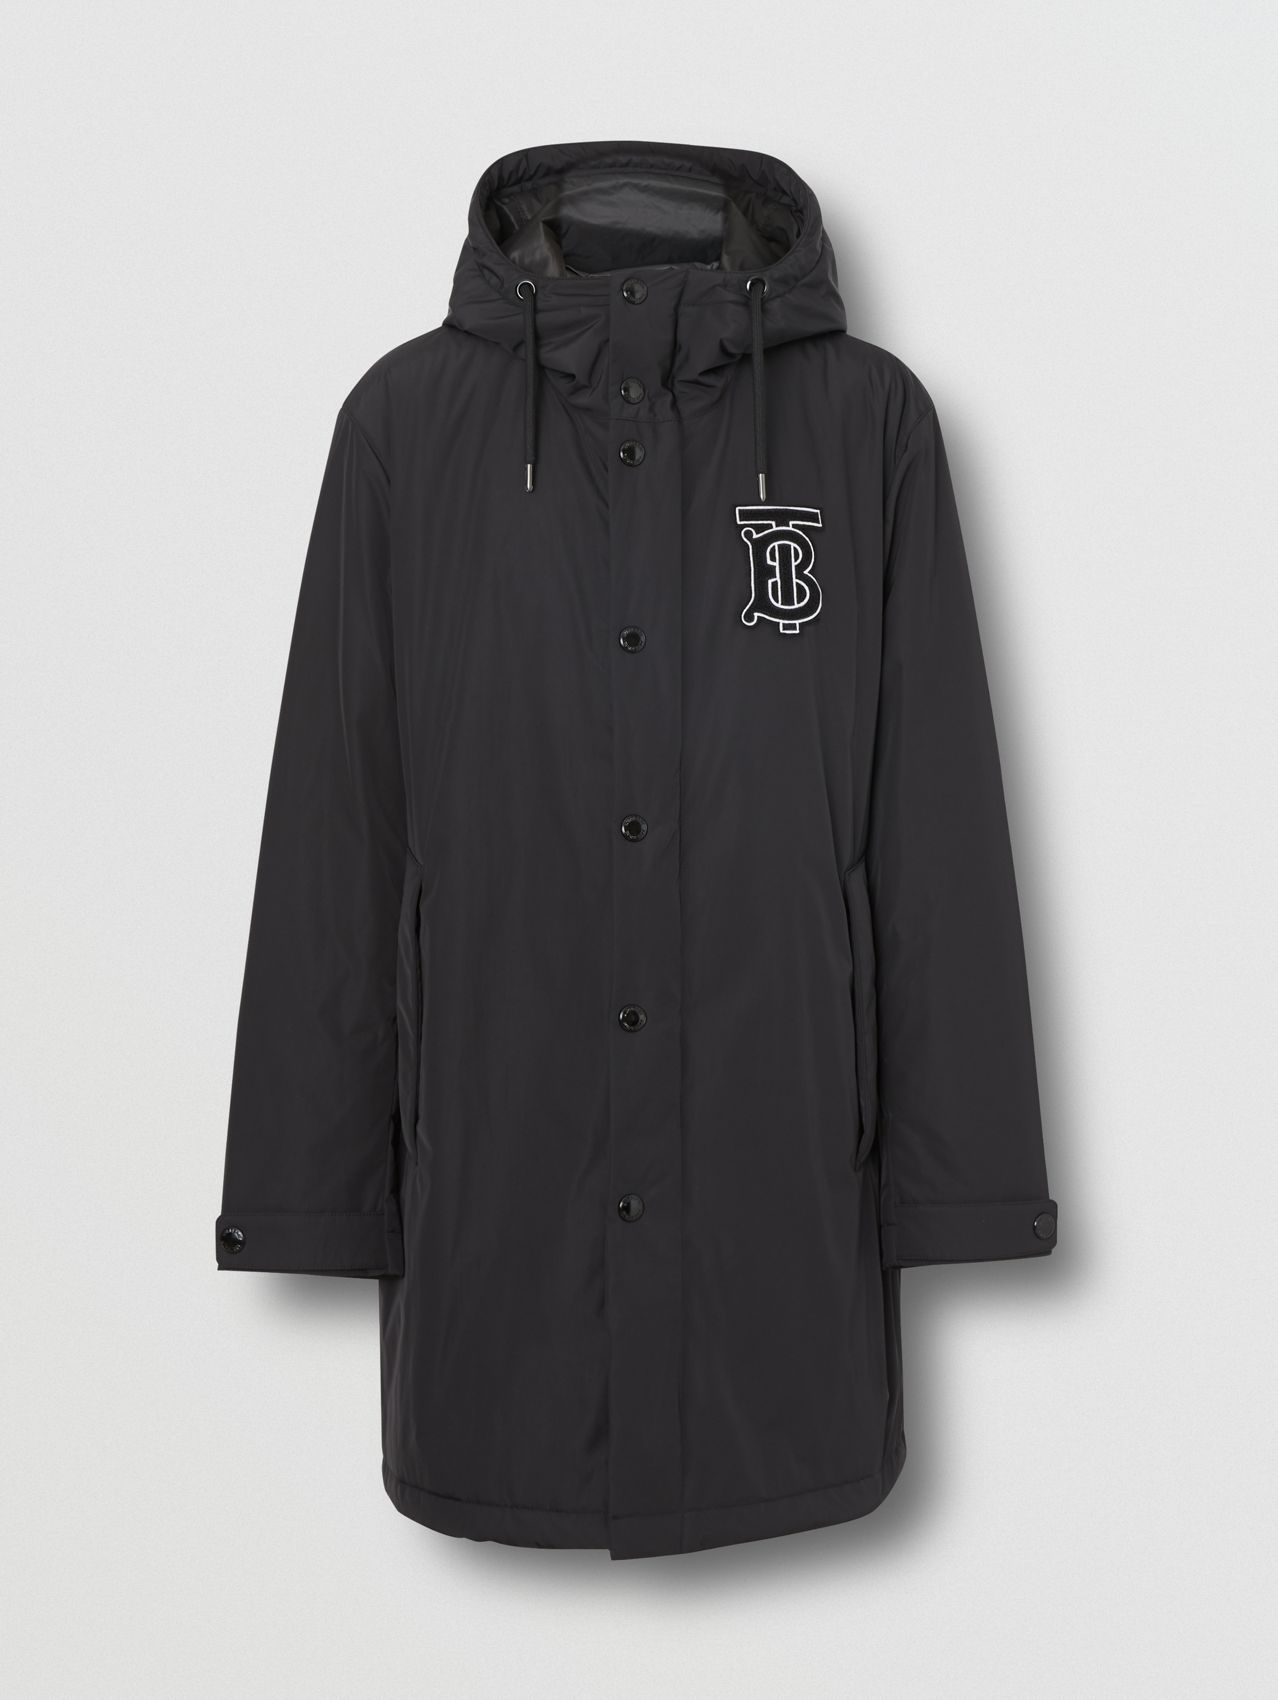 Monogram Motif Nylon Twill Hooded Coat in Black